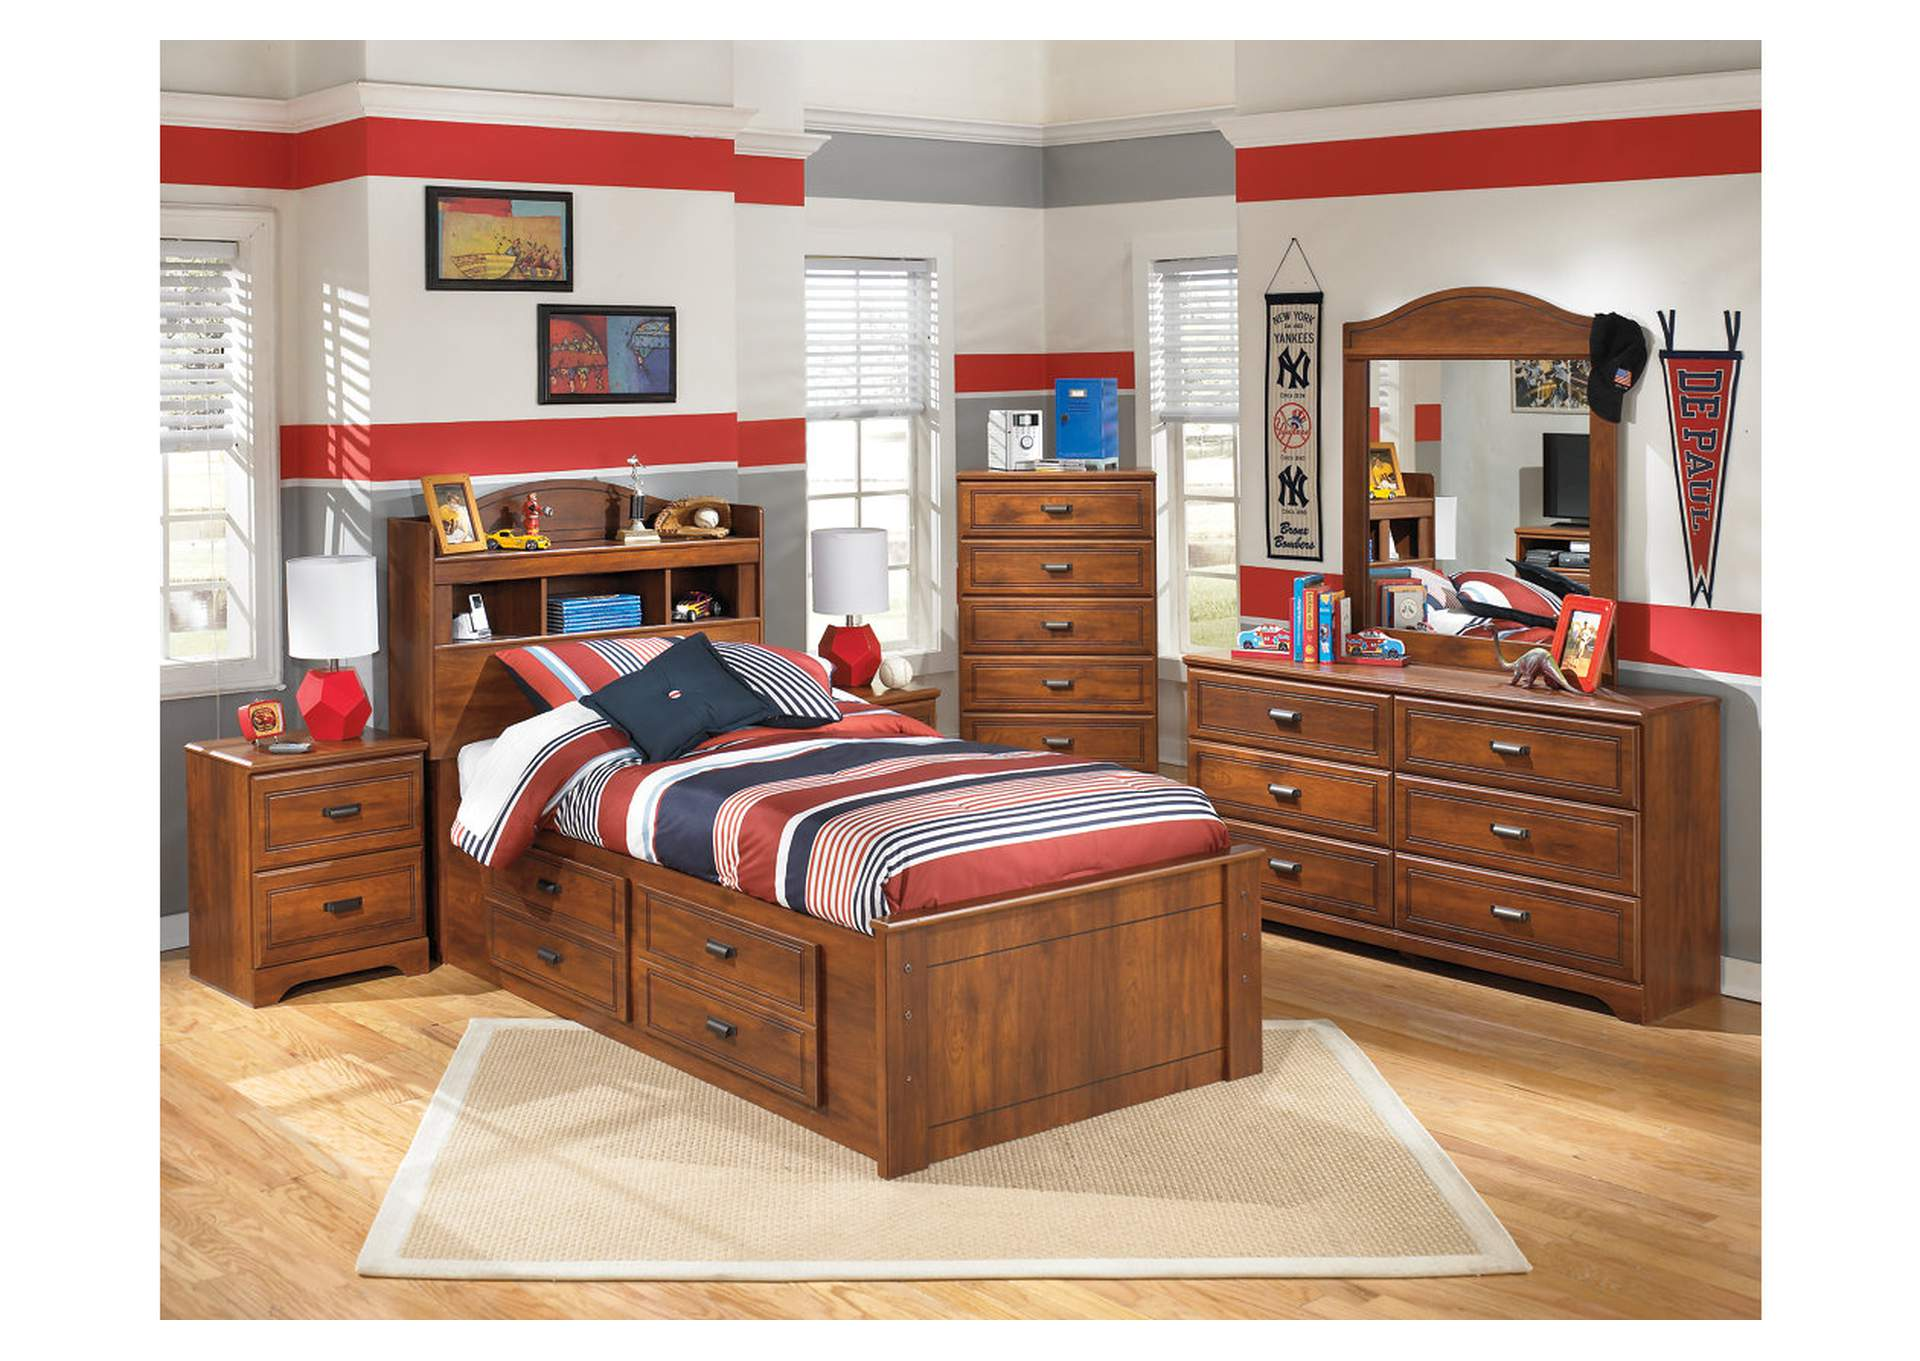 Barchan Twin Bookcase Storage Bed w/Dresser, Mirror, Drawer Chest & Nightstand,Signature Design by Ashley